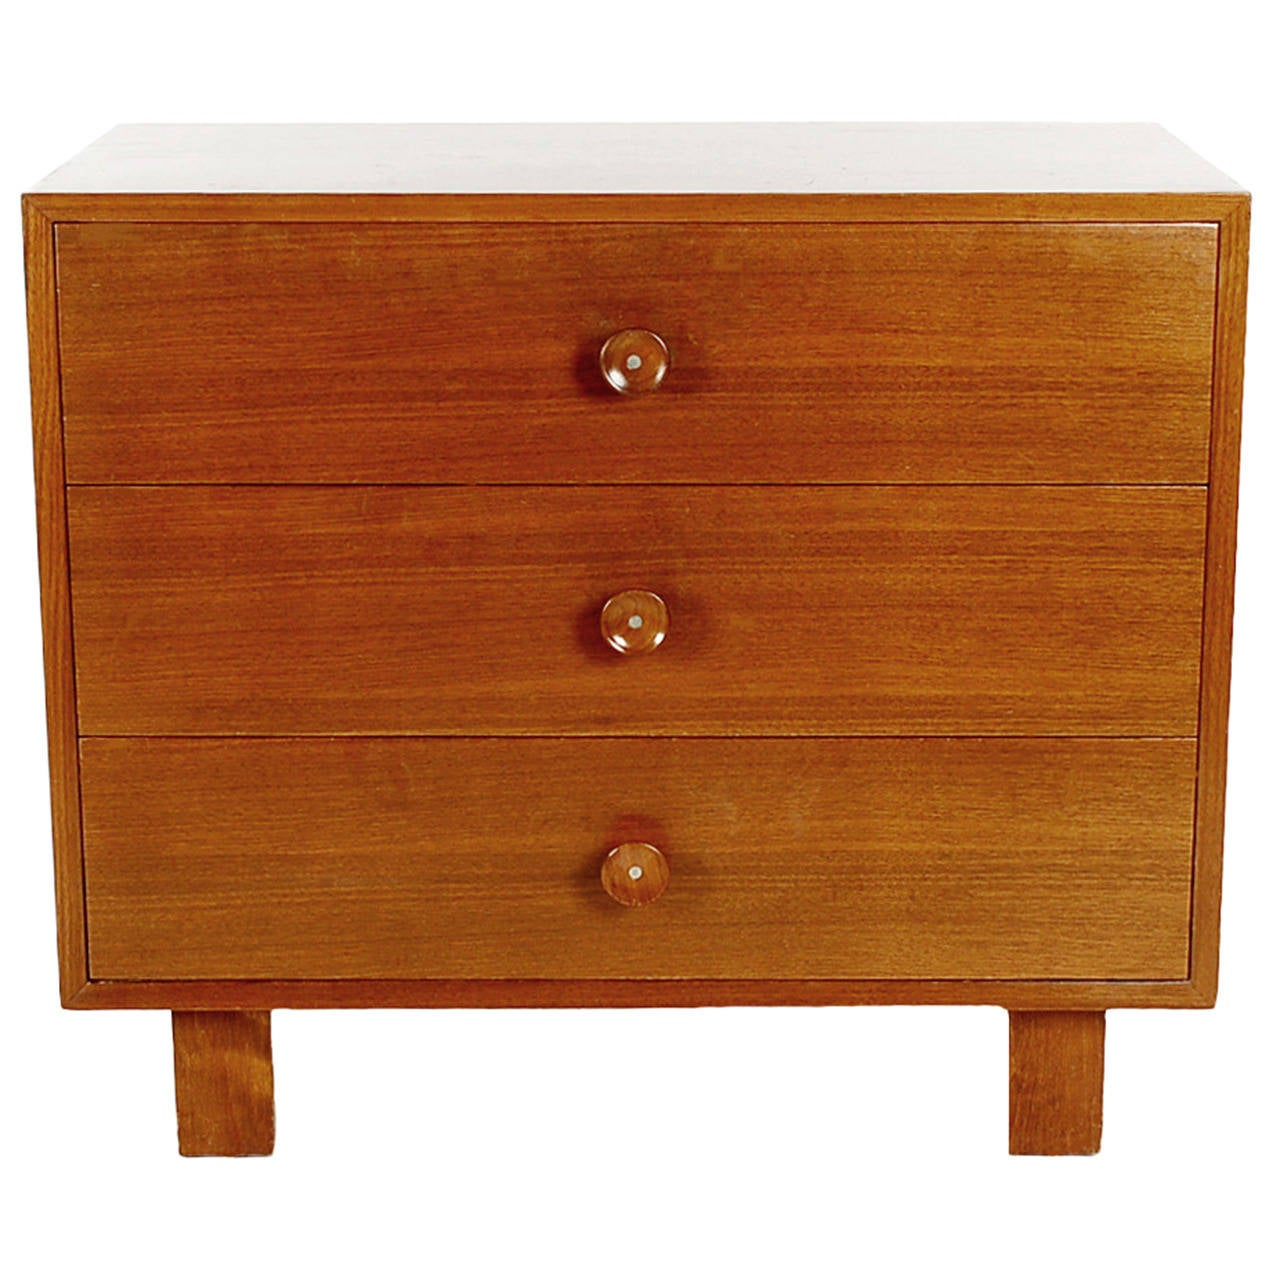 George Nelson for Herman Miller Chest of Drawers in Walnut